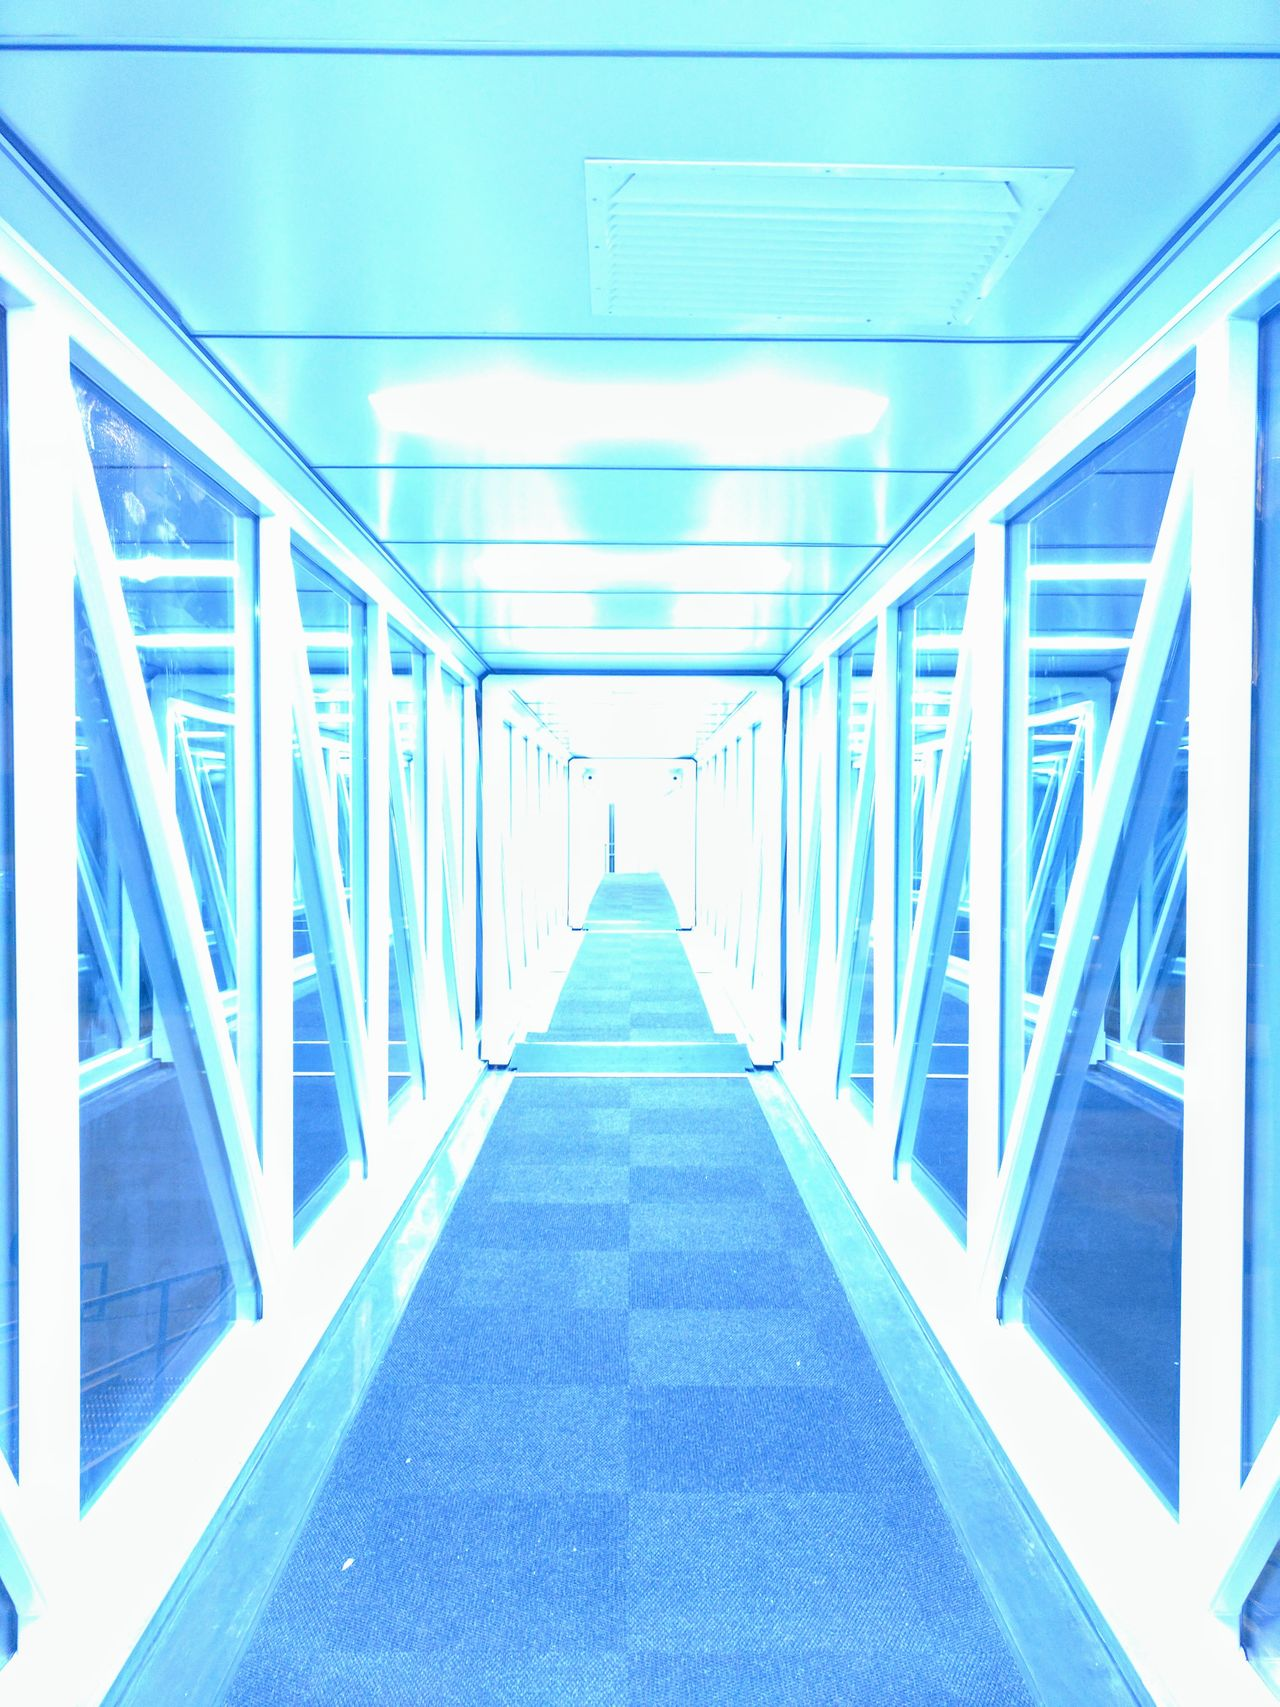 Architecture The Way Forward Indoors  Built Structure No People Modern Elevated Walkway Tourism Traveling Abstract Travel Flying Transportation Futuristic City Blue Taking Photos Travel Destinations Idyllic EyeEm Ethereal Enjoying Life Taking Pictures Airport HeavenSomeone turned on the lights right as I took the picture but I thibk it turned out cooler this way :)